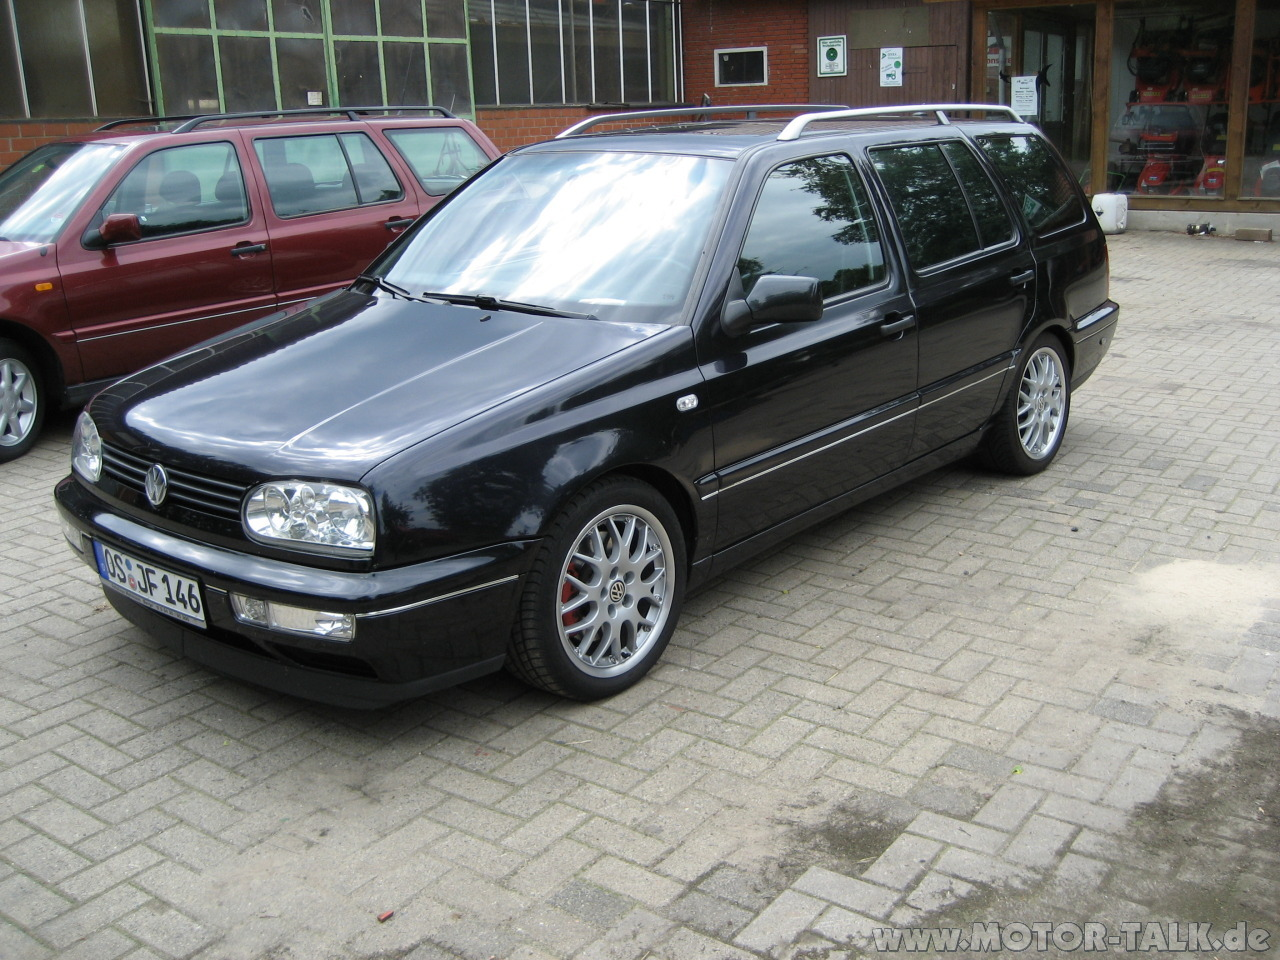 Vw golf 3 1h 2 9 vr6 variant syncro 79304 for Interieur golf 3 vr6